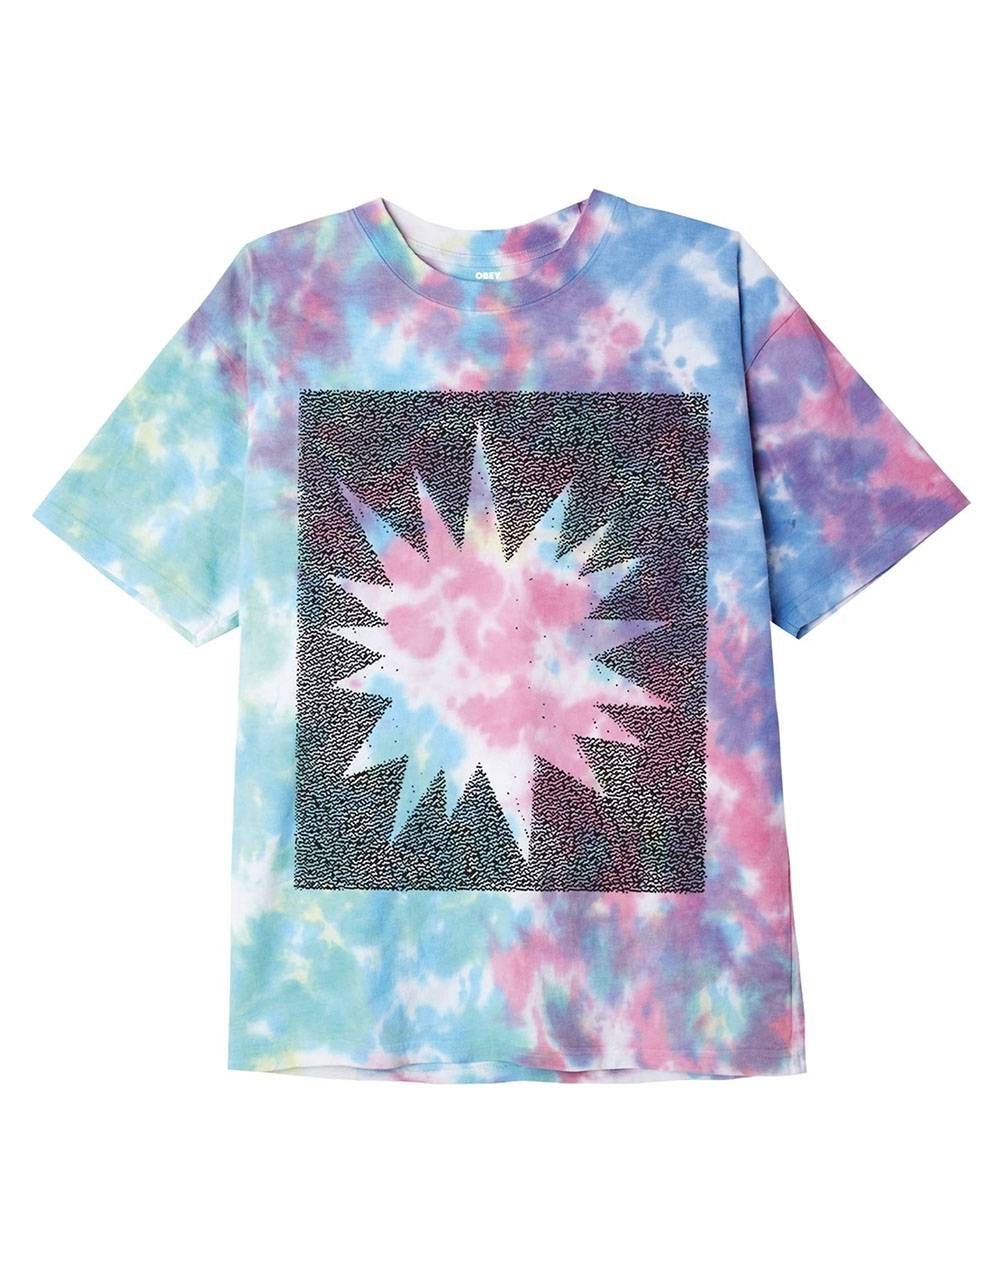 Obey heavy shift organic blotch tie dye tee - pastel blotch obey T-shirt 49,18 €